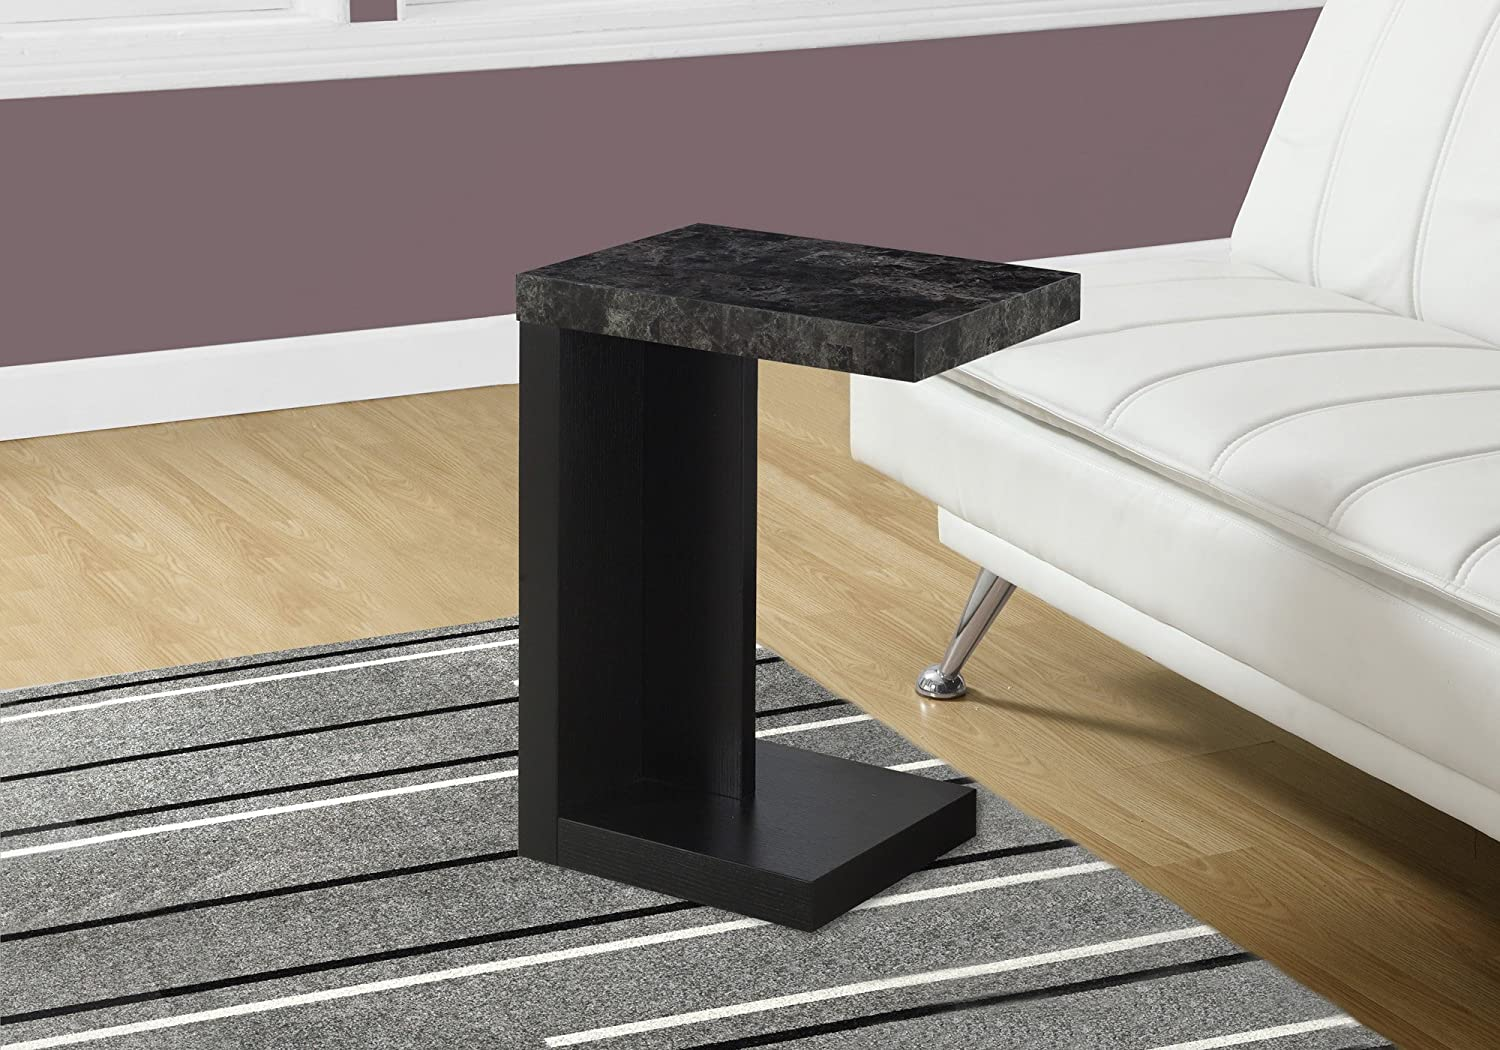 Monarch Specialties I 3211 Accent Table with Marble Look Top, Black Grey